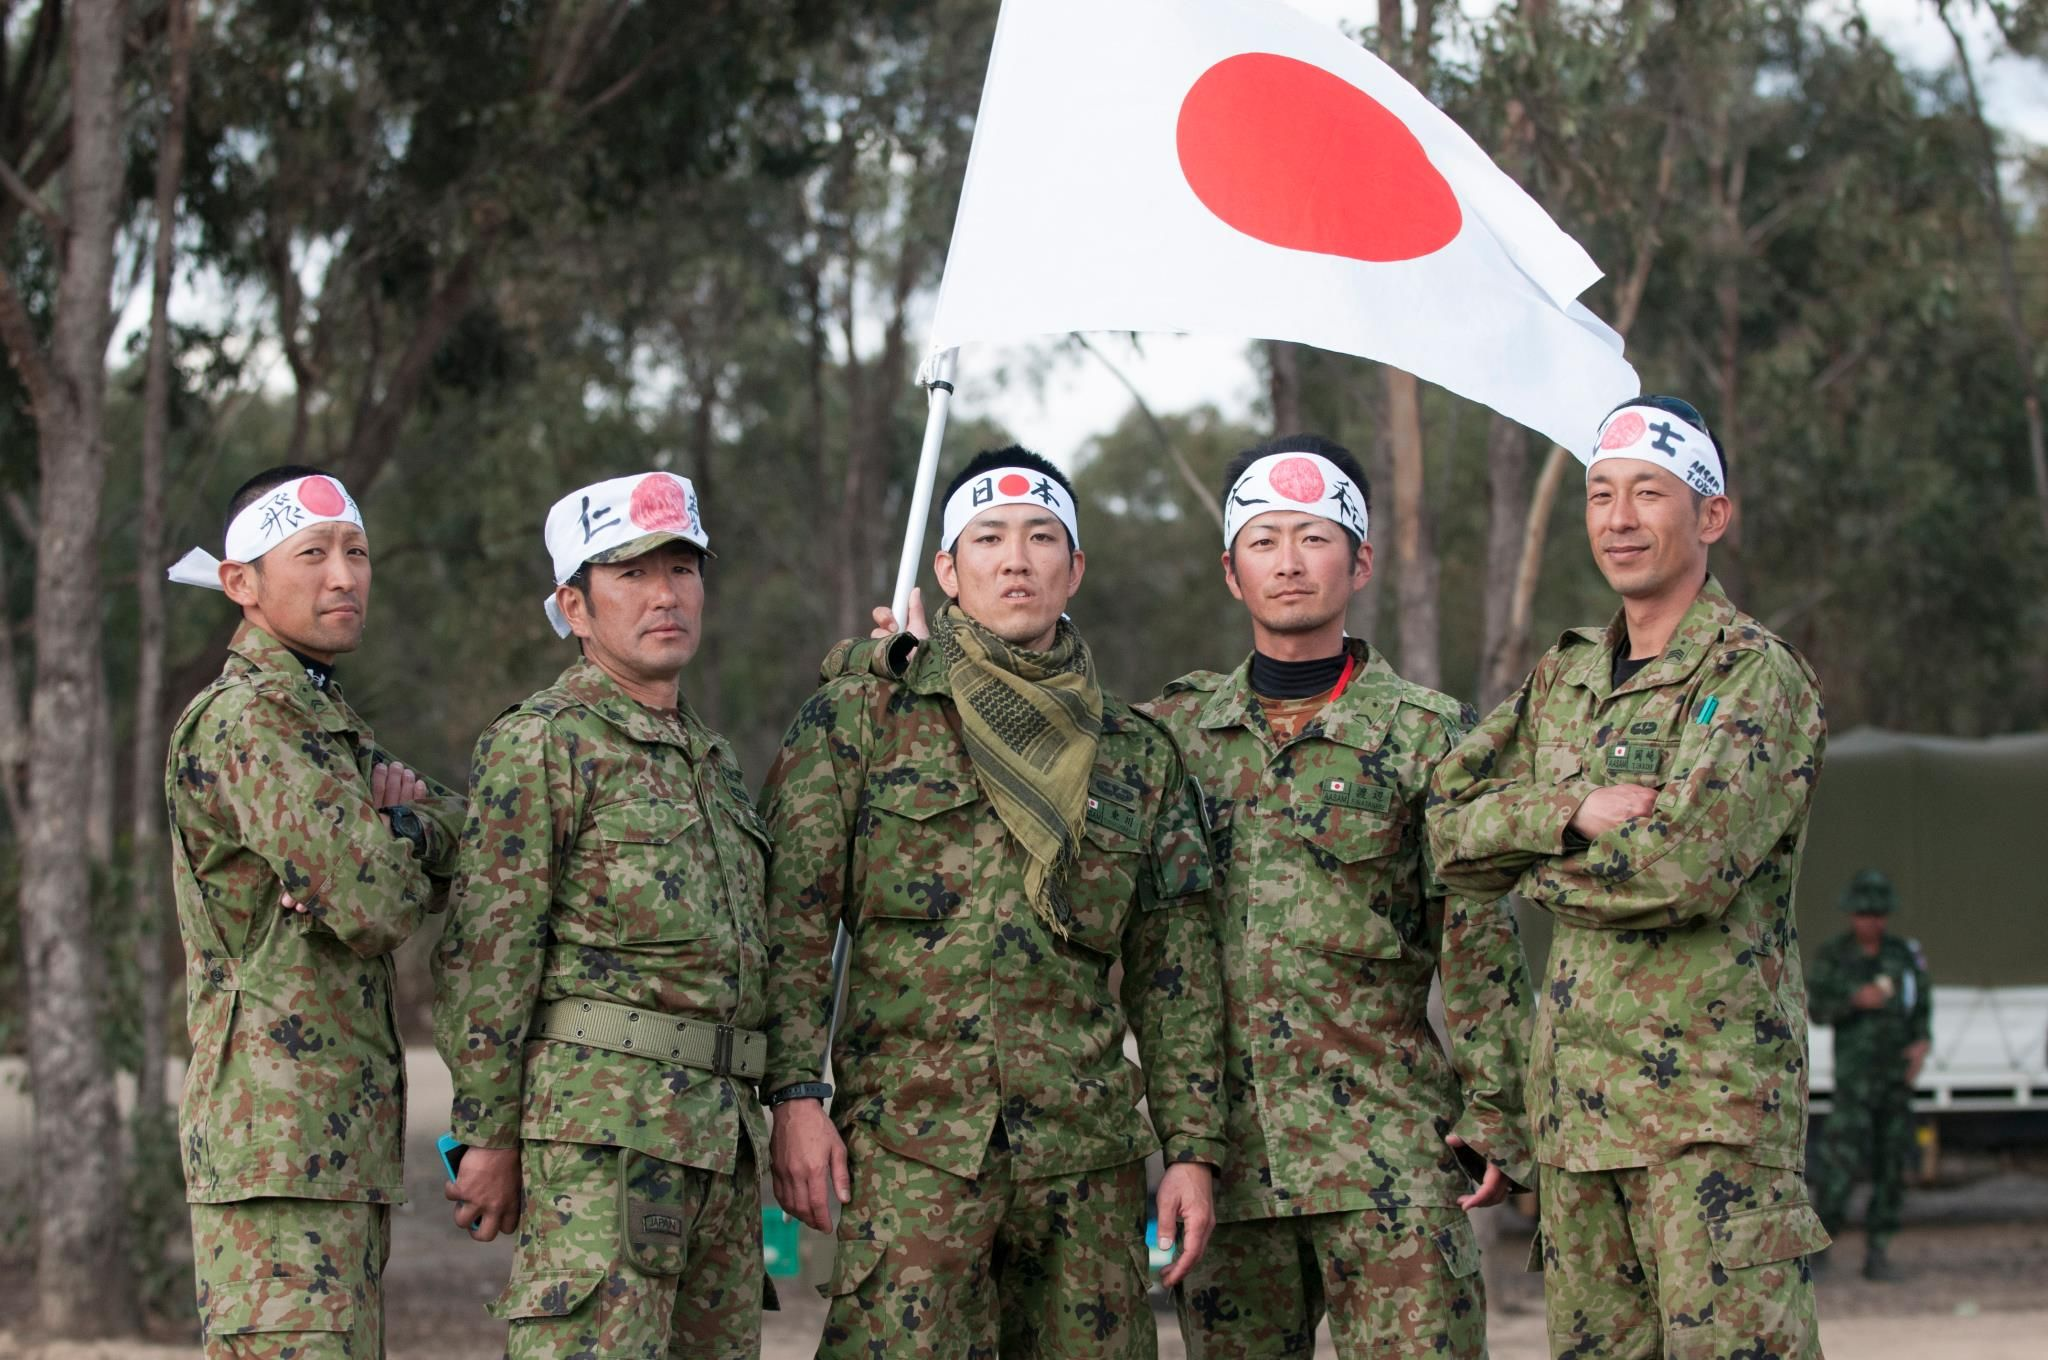 Jgsdf soldiers pose for a picture 2048x1360 with images